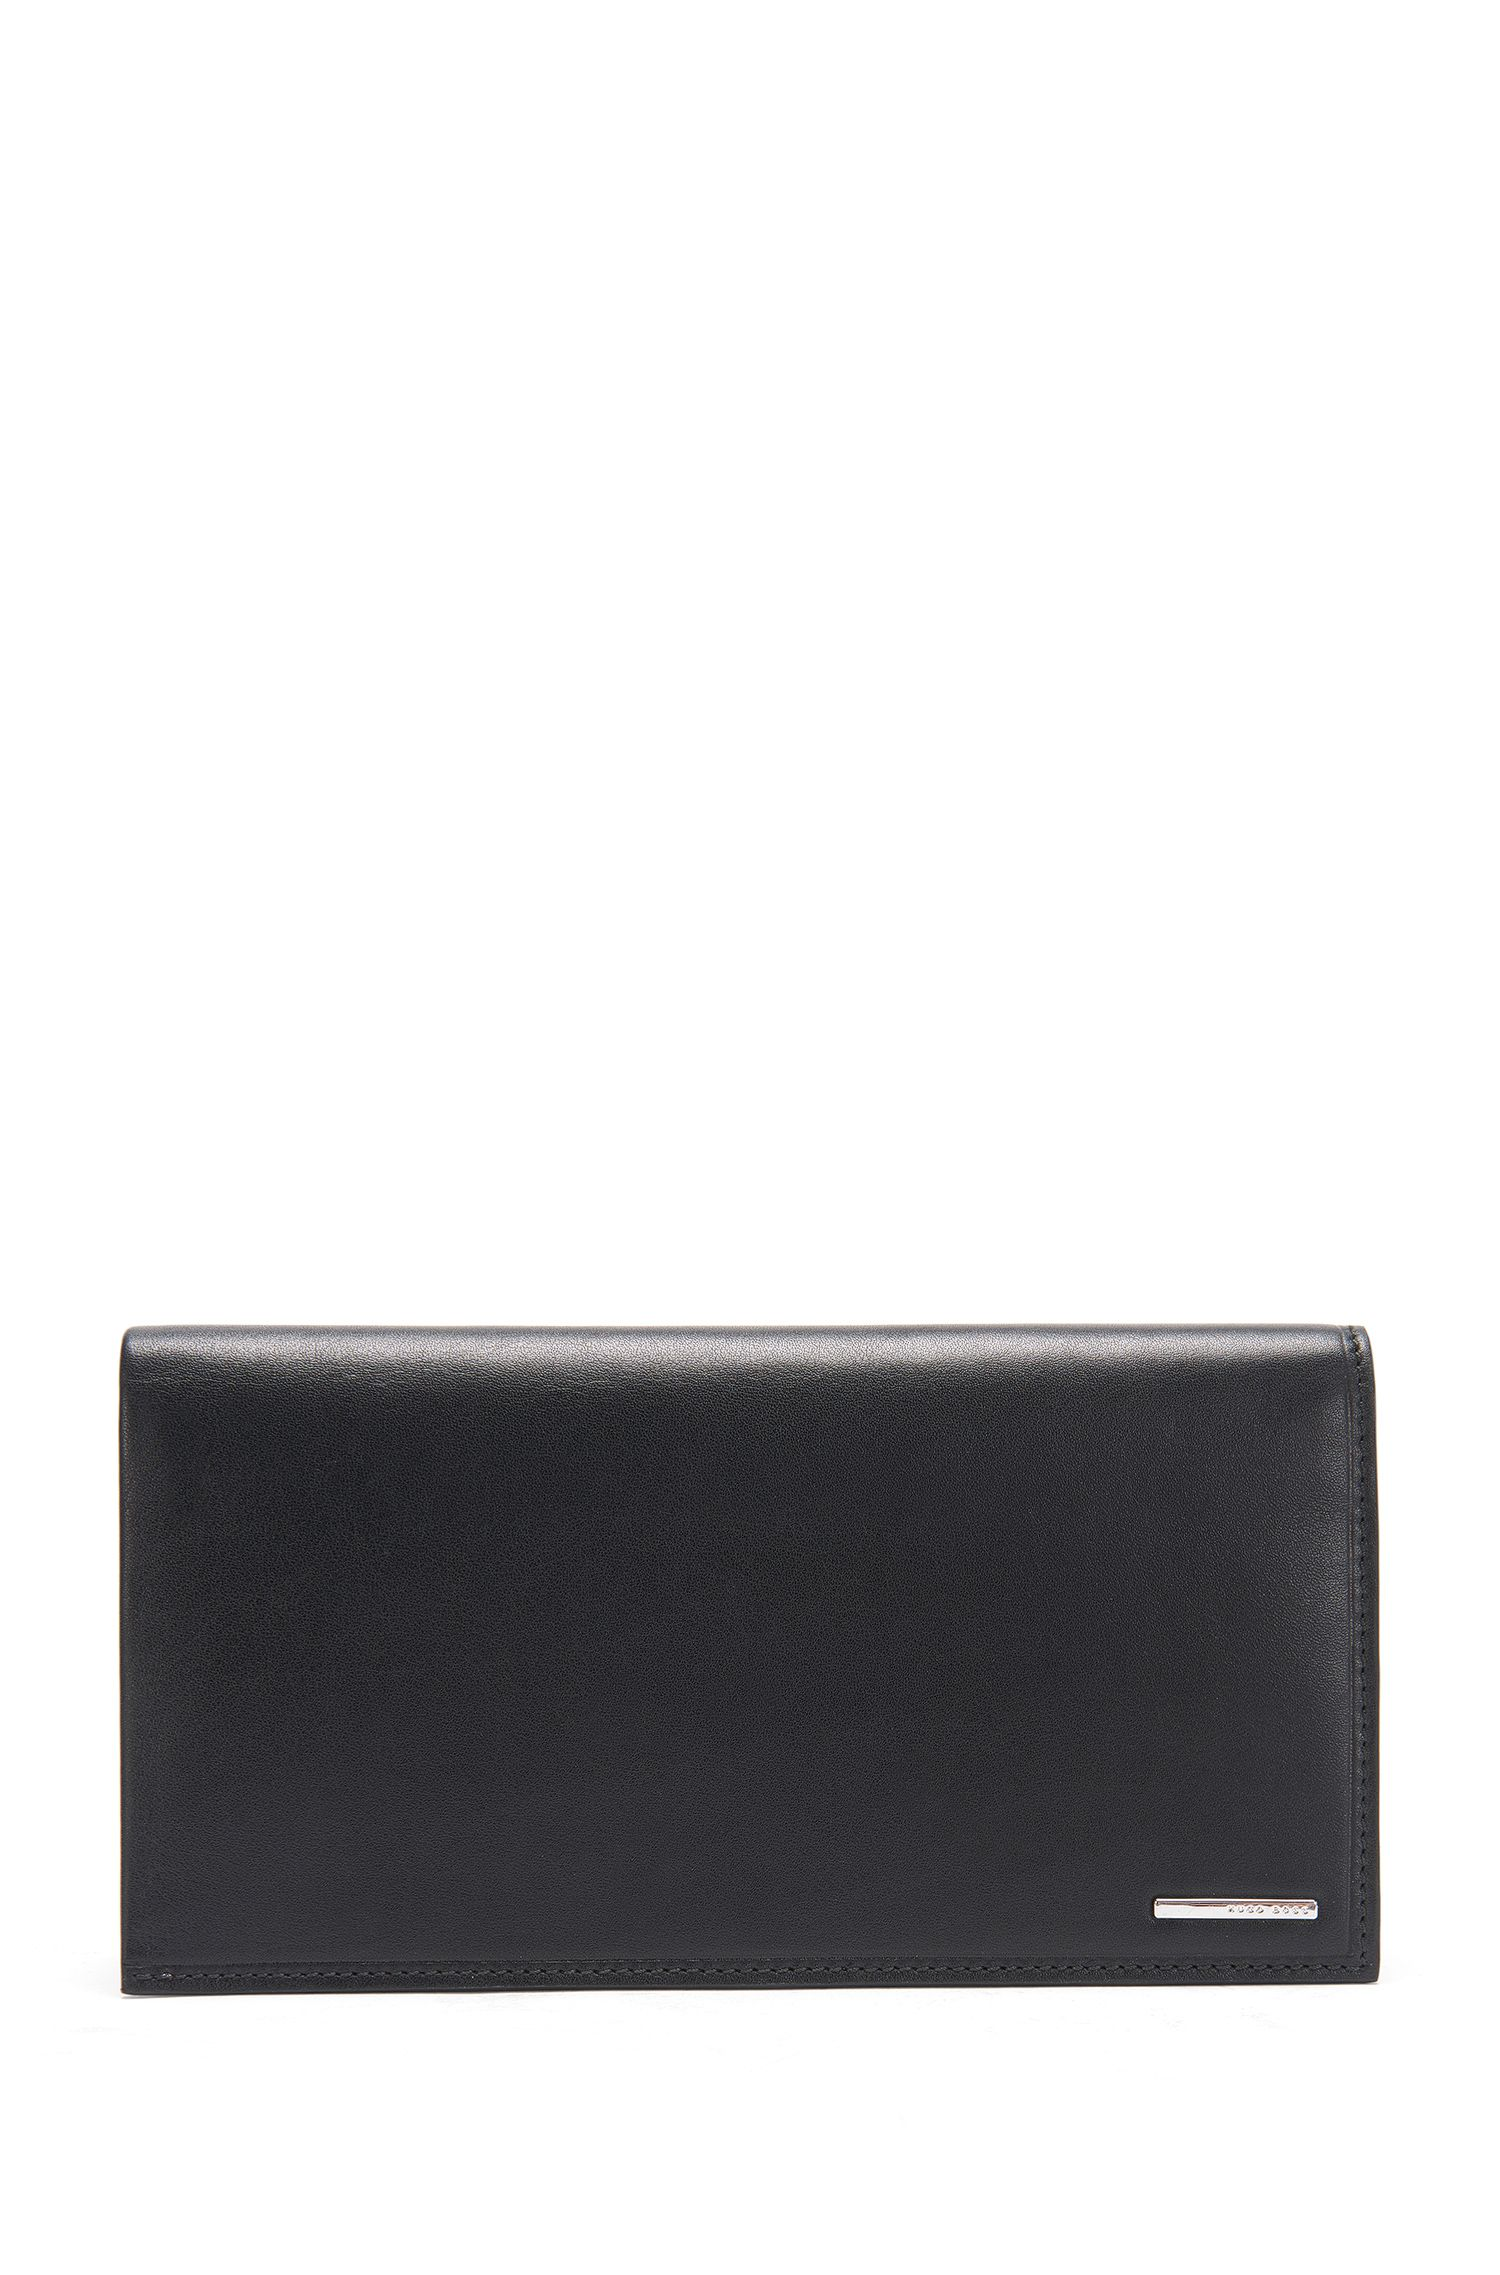 Long wallet in natural-grain leather